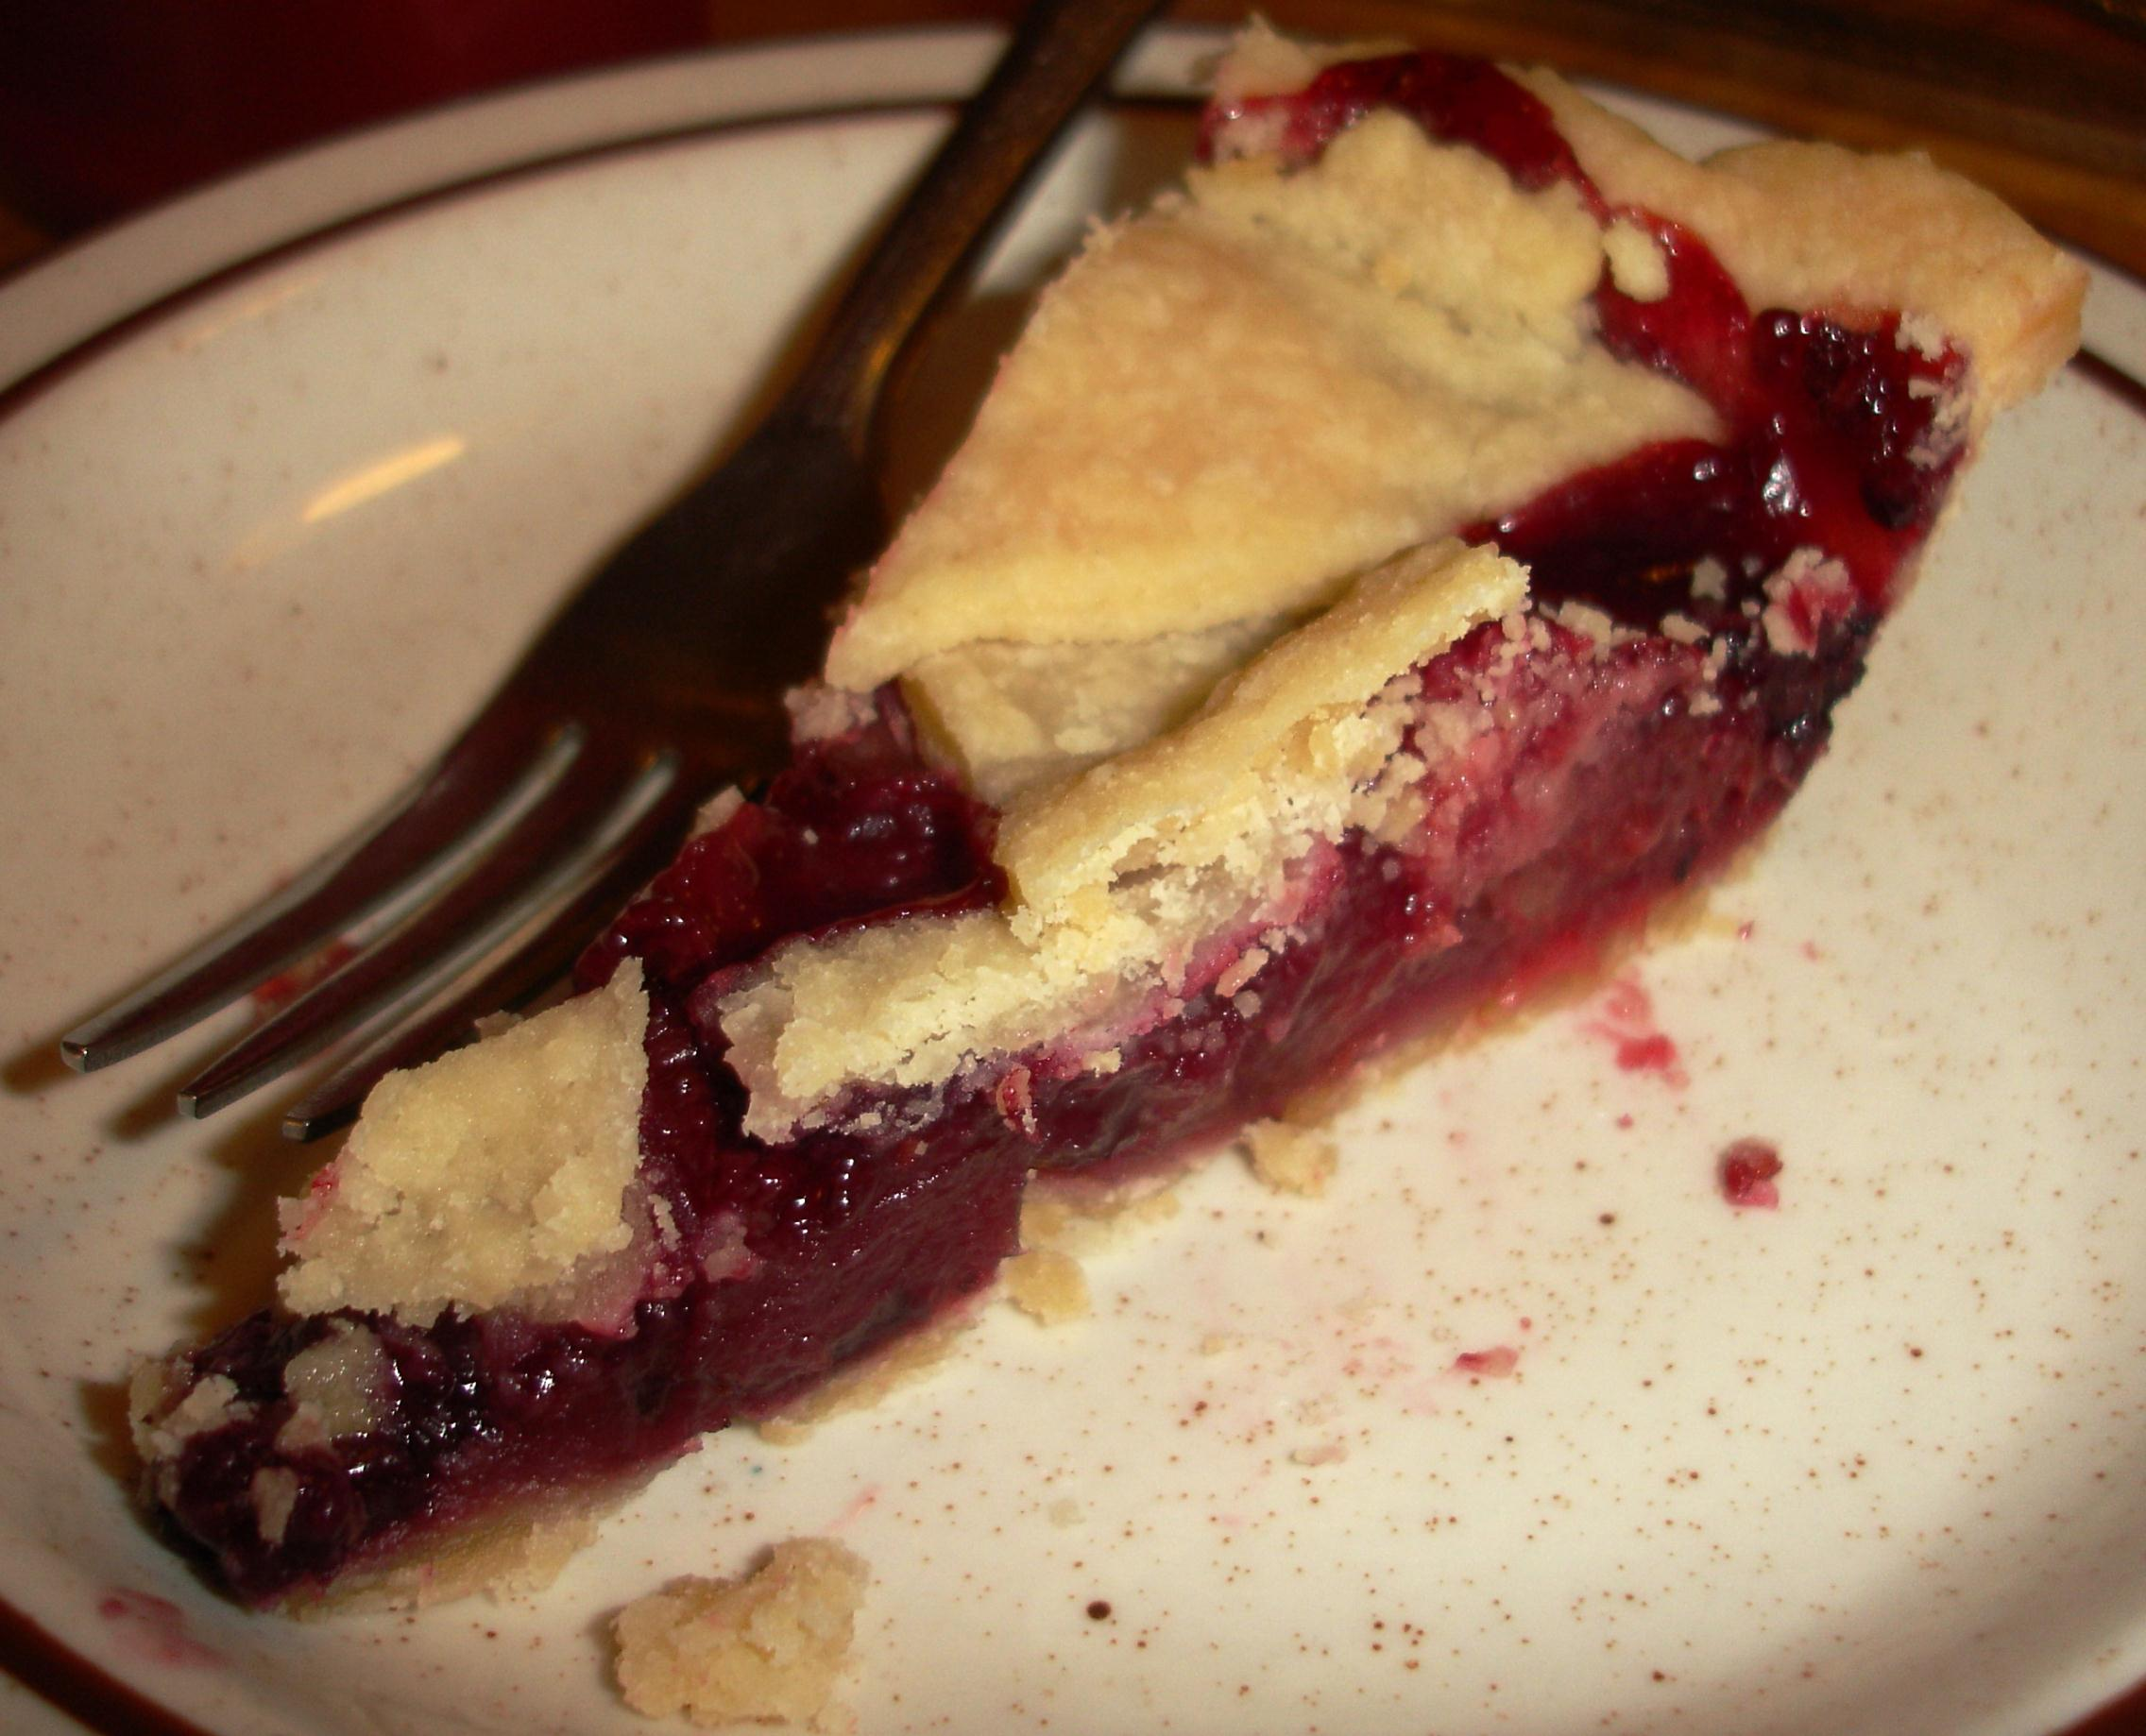 Pie servings here are not enormous, but this is half a wedge of three-berry pie, which was split for us in the kitchen.